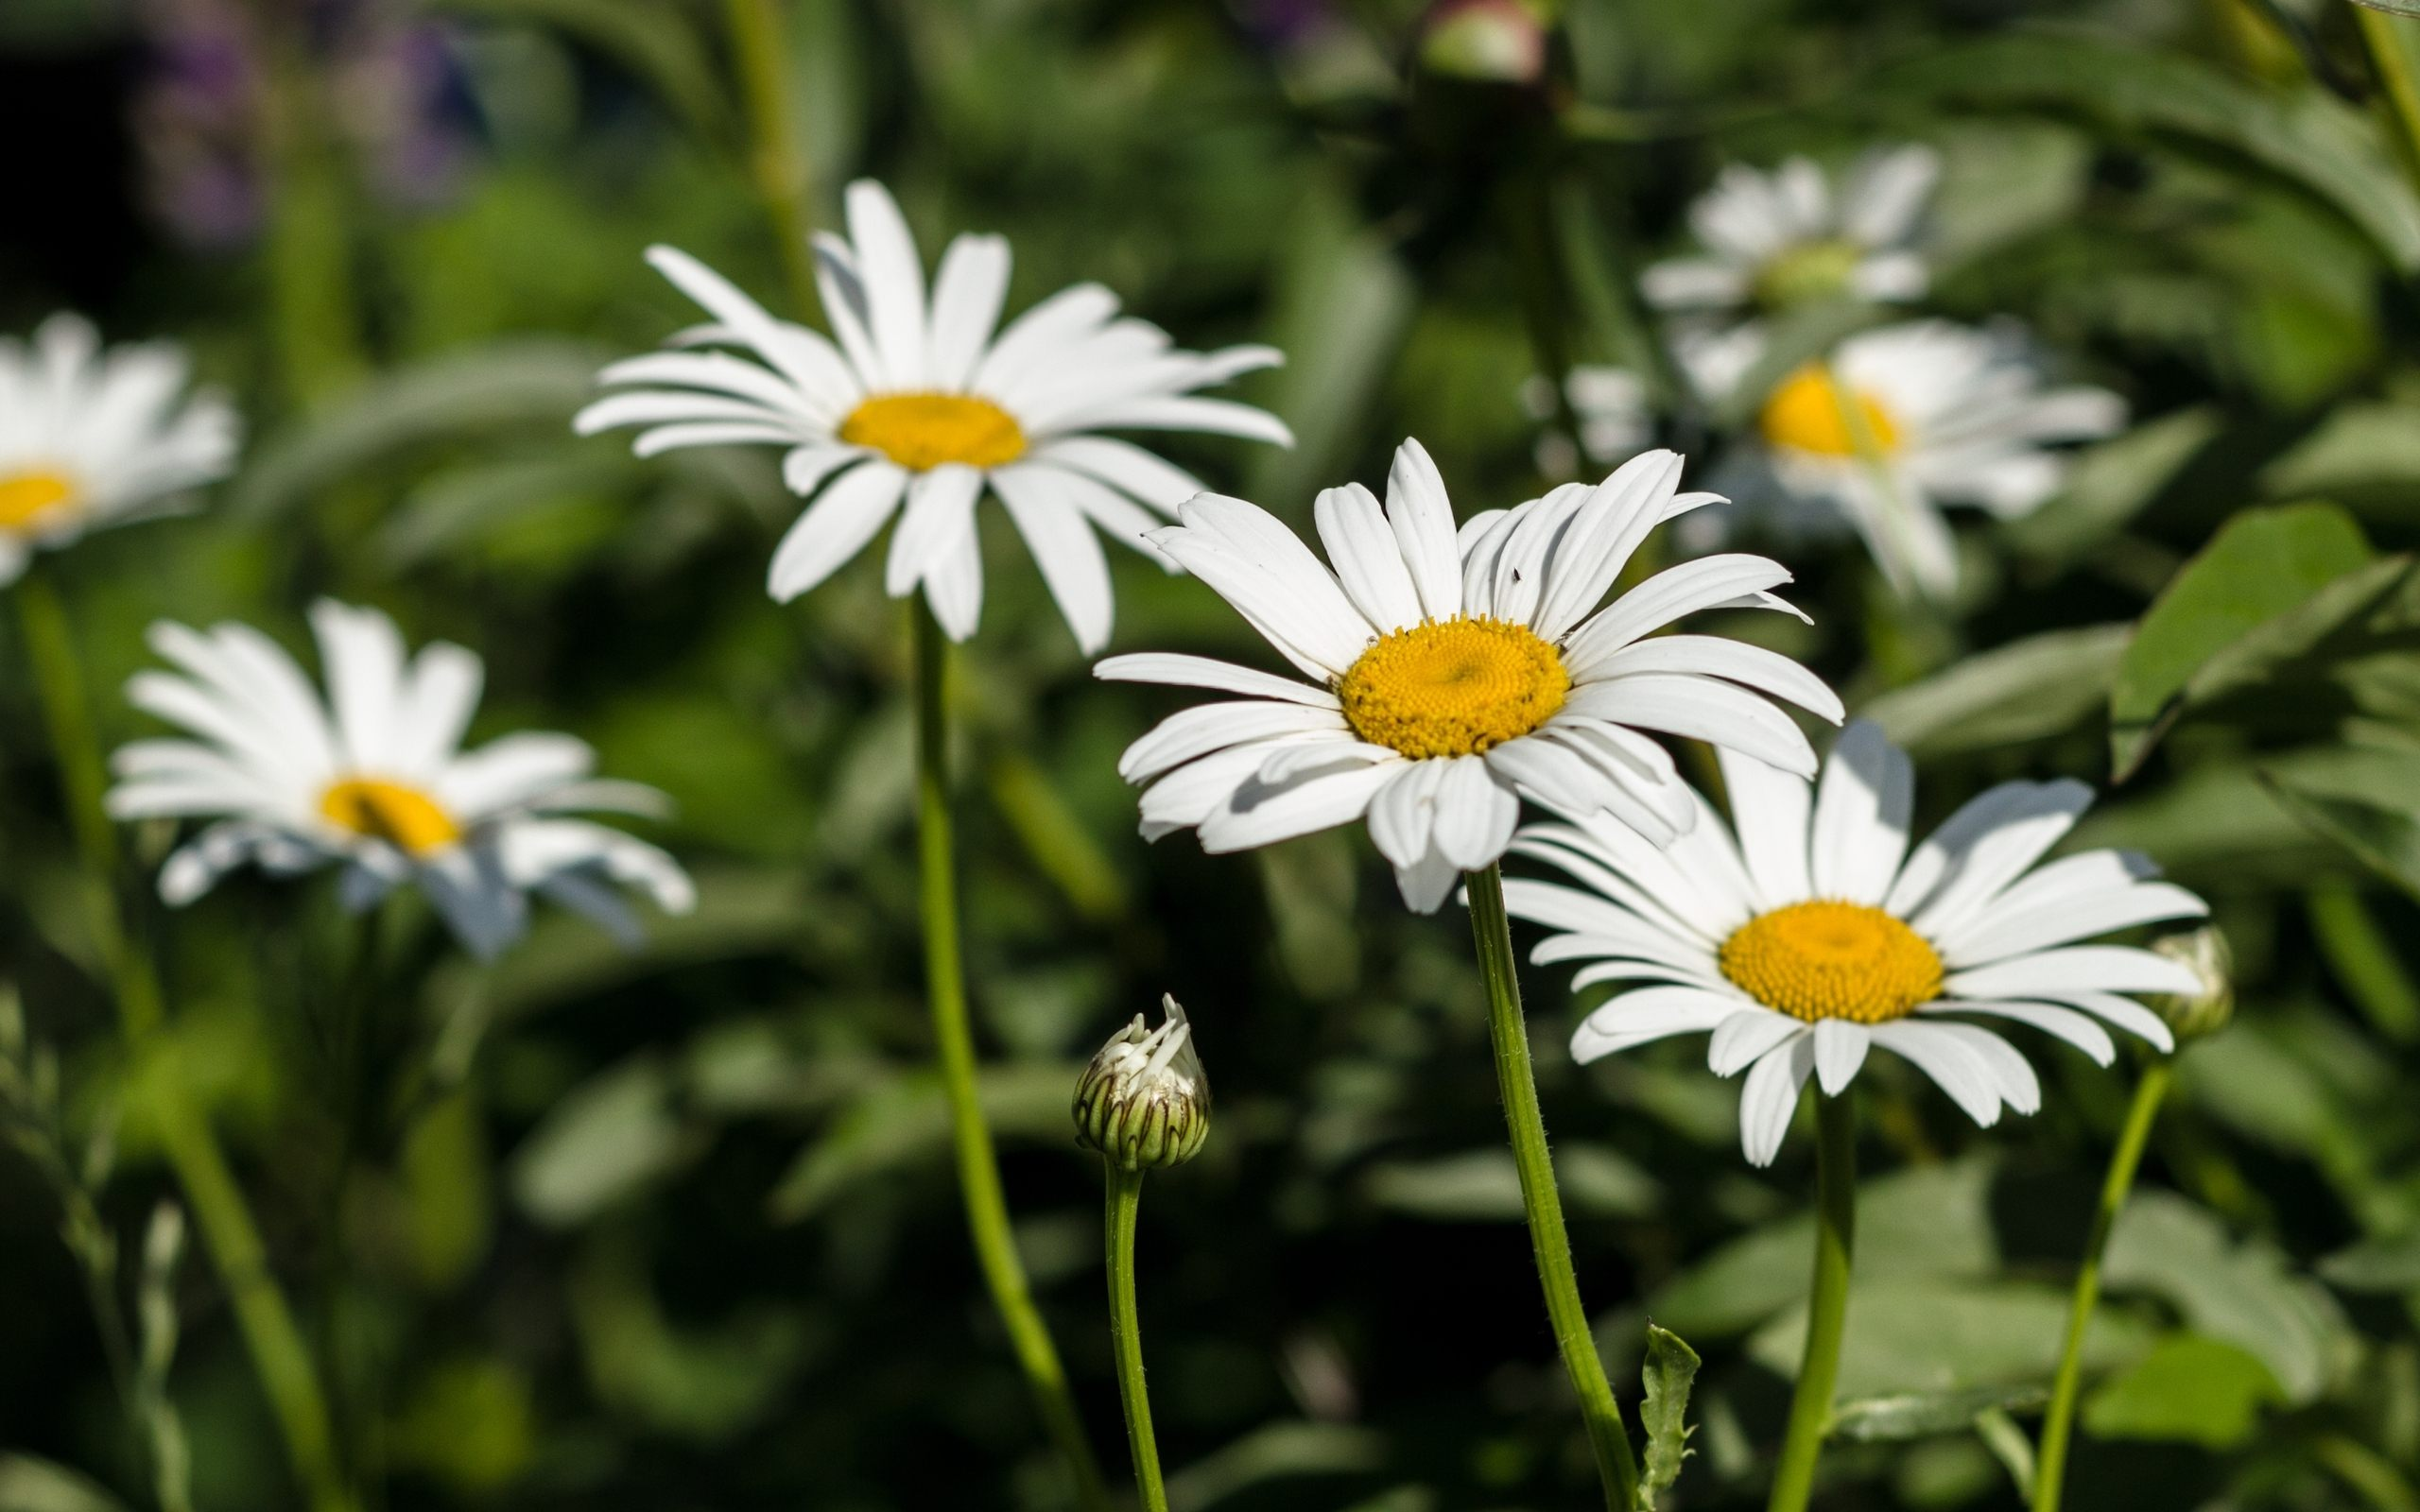 Free photo white daisy flower mother nature growth nature white daisy flower izmirmasajfo